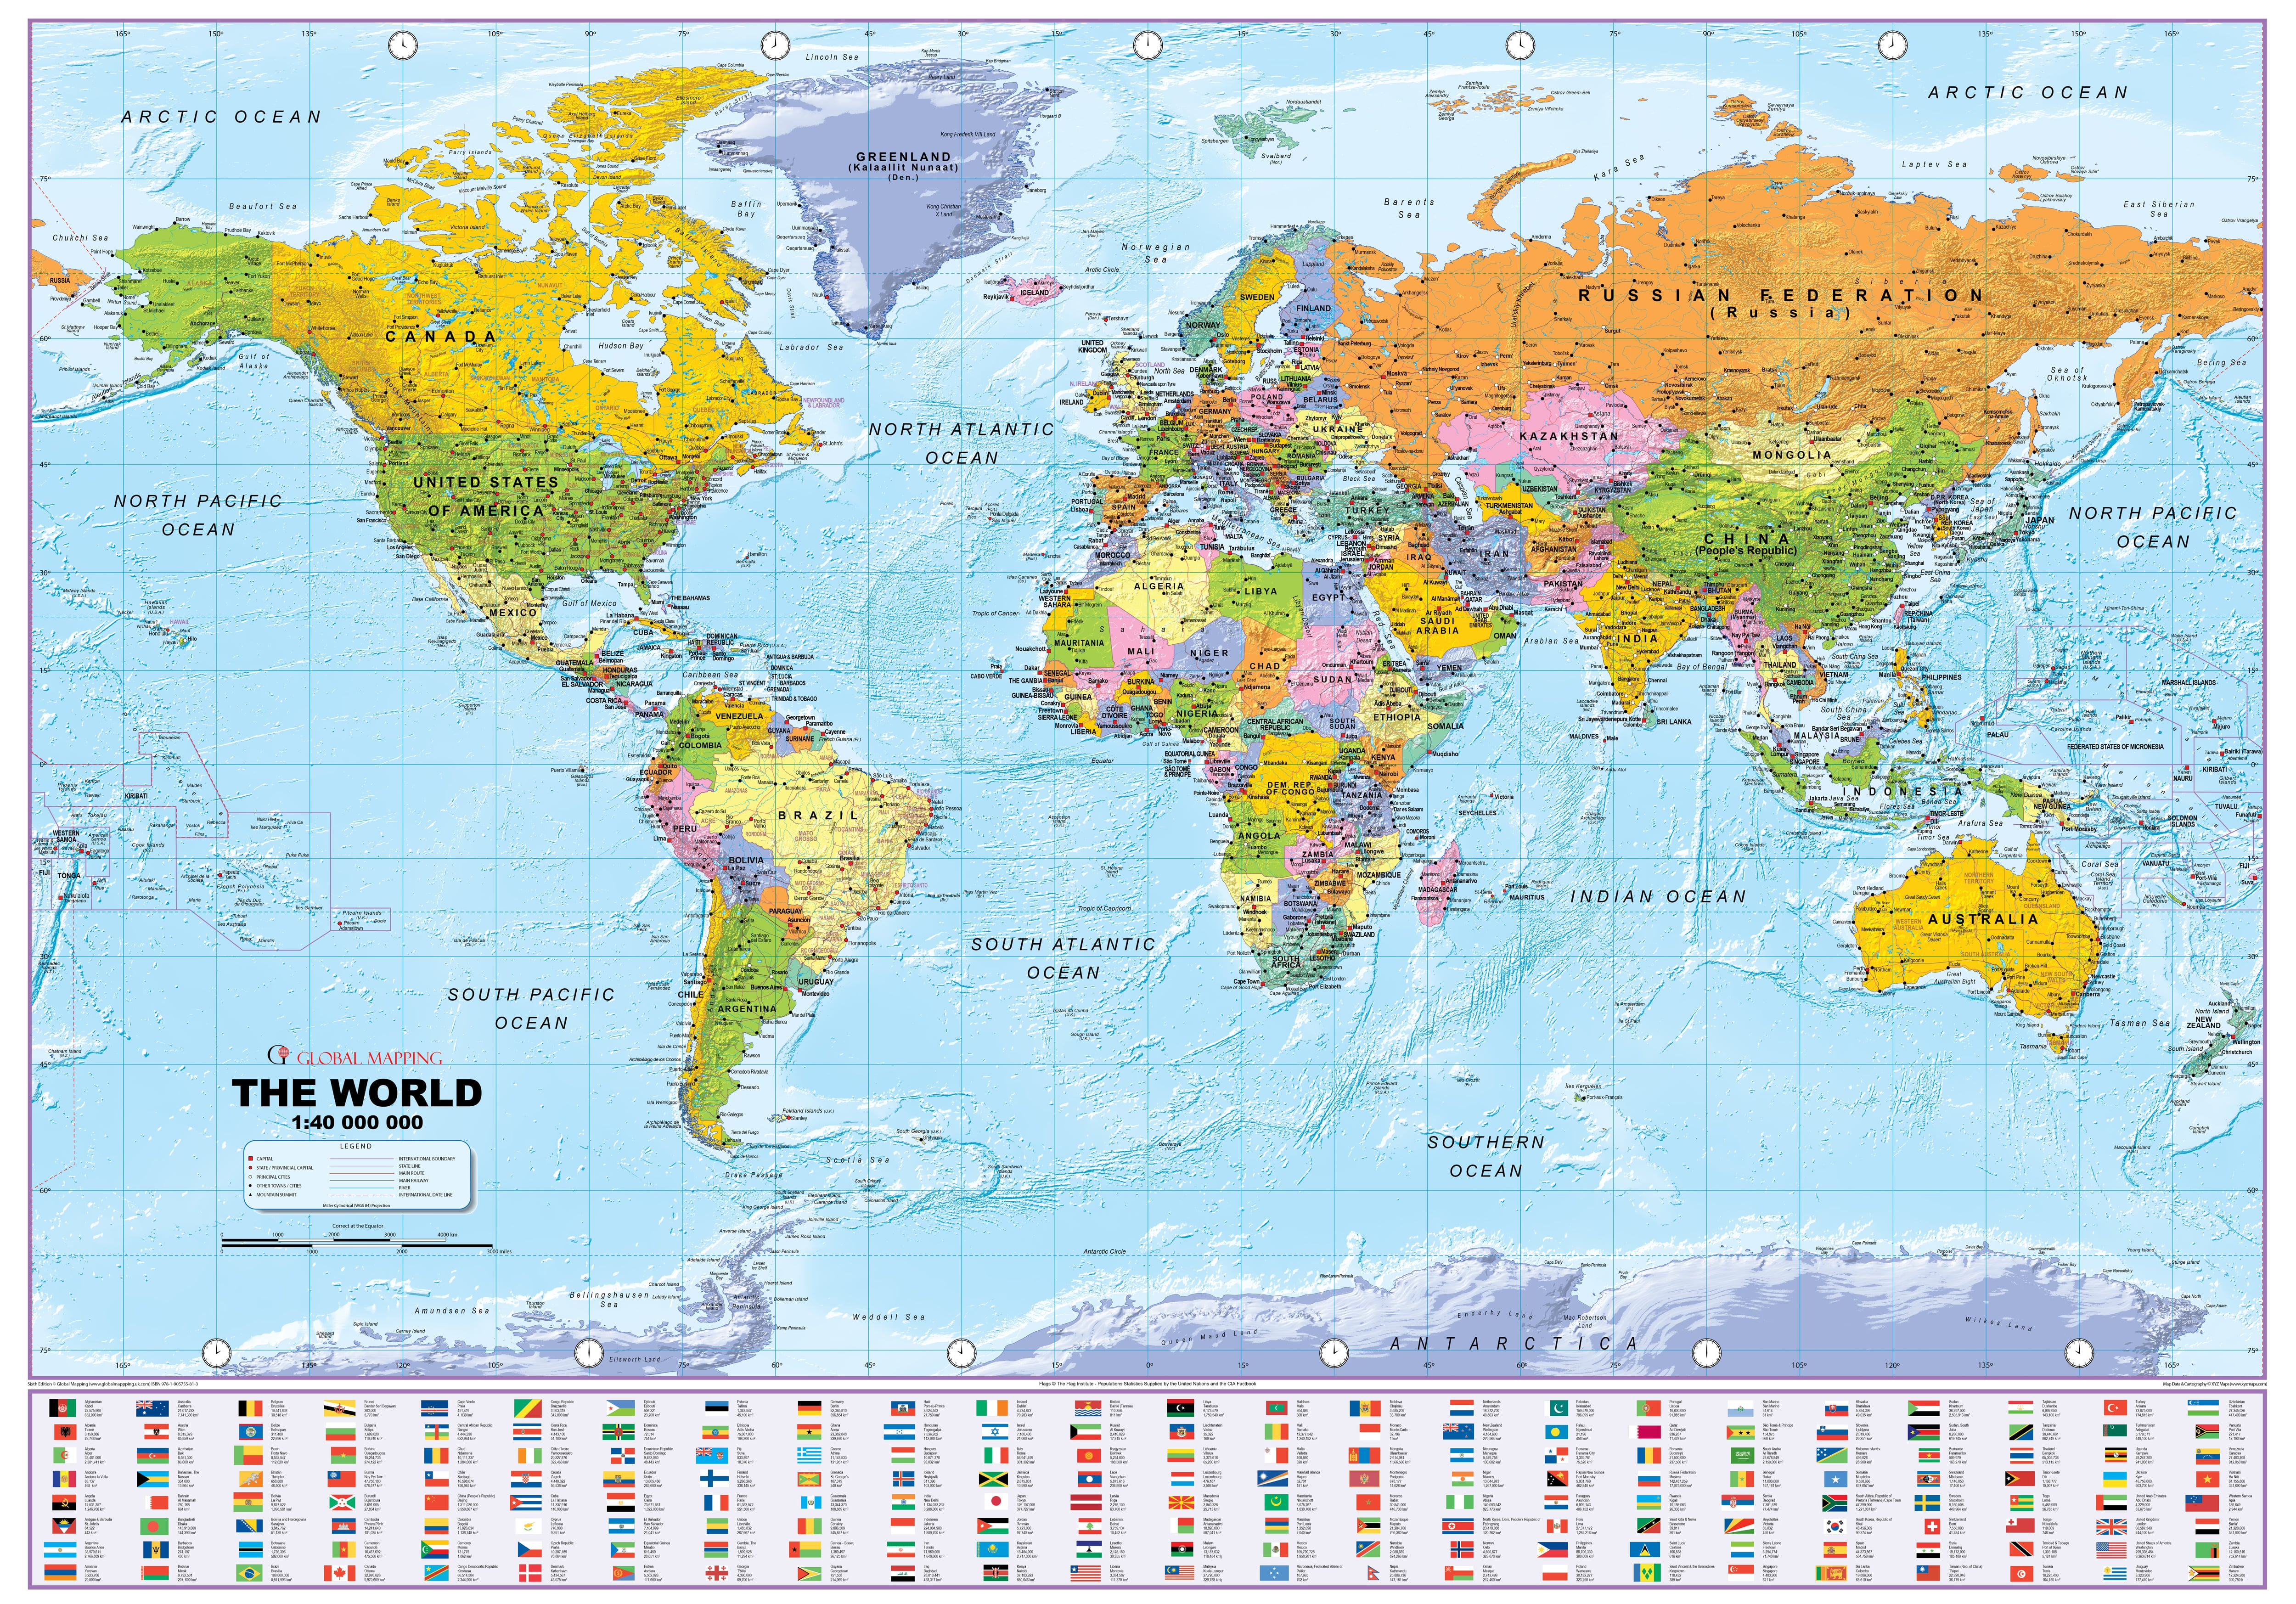 Map Of The World Online.Political World Map With Flags 1 40 Mio